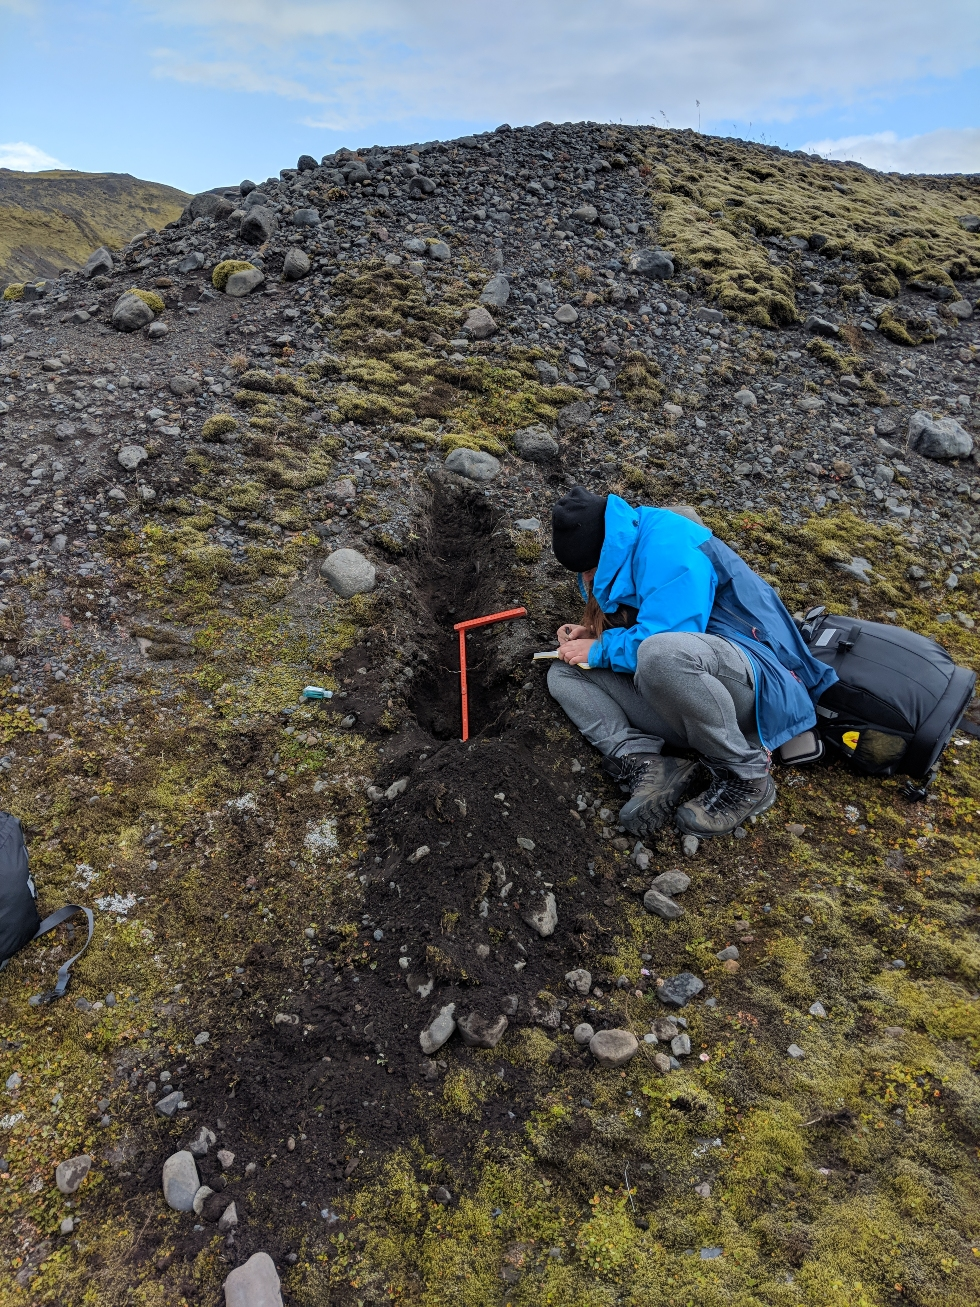 Collection of sedimentological data is often done by digging pits in a variety of landforms where we then analyze the type, shape and size of the various sediments to try and understand how they were deposited. Here you can see me recording the sedimentological characteristics of a moraine. Note: using a scale (orange ruler) is integral to field work!